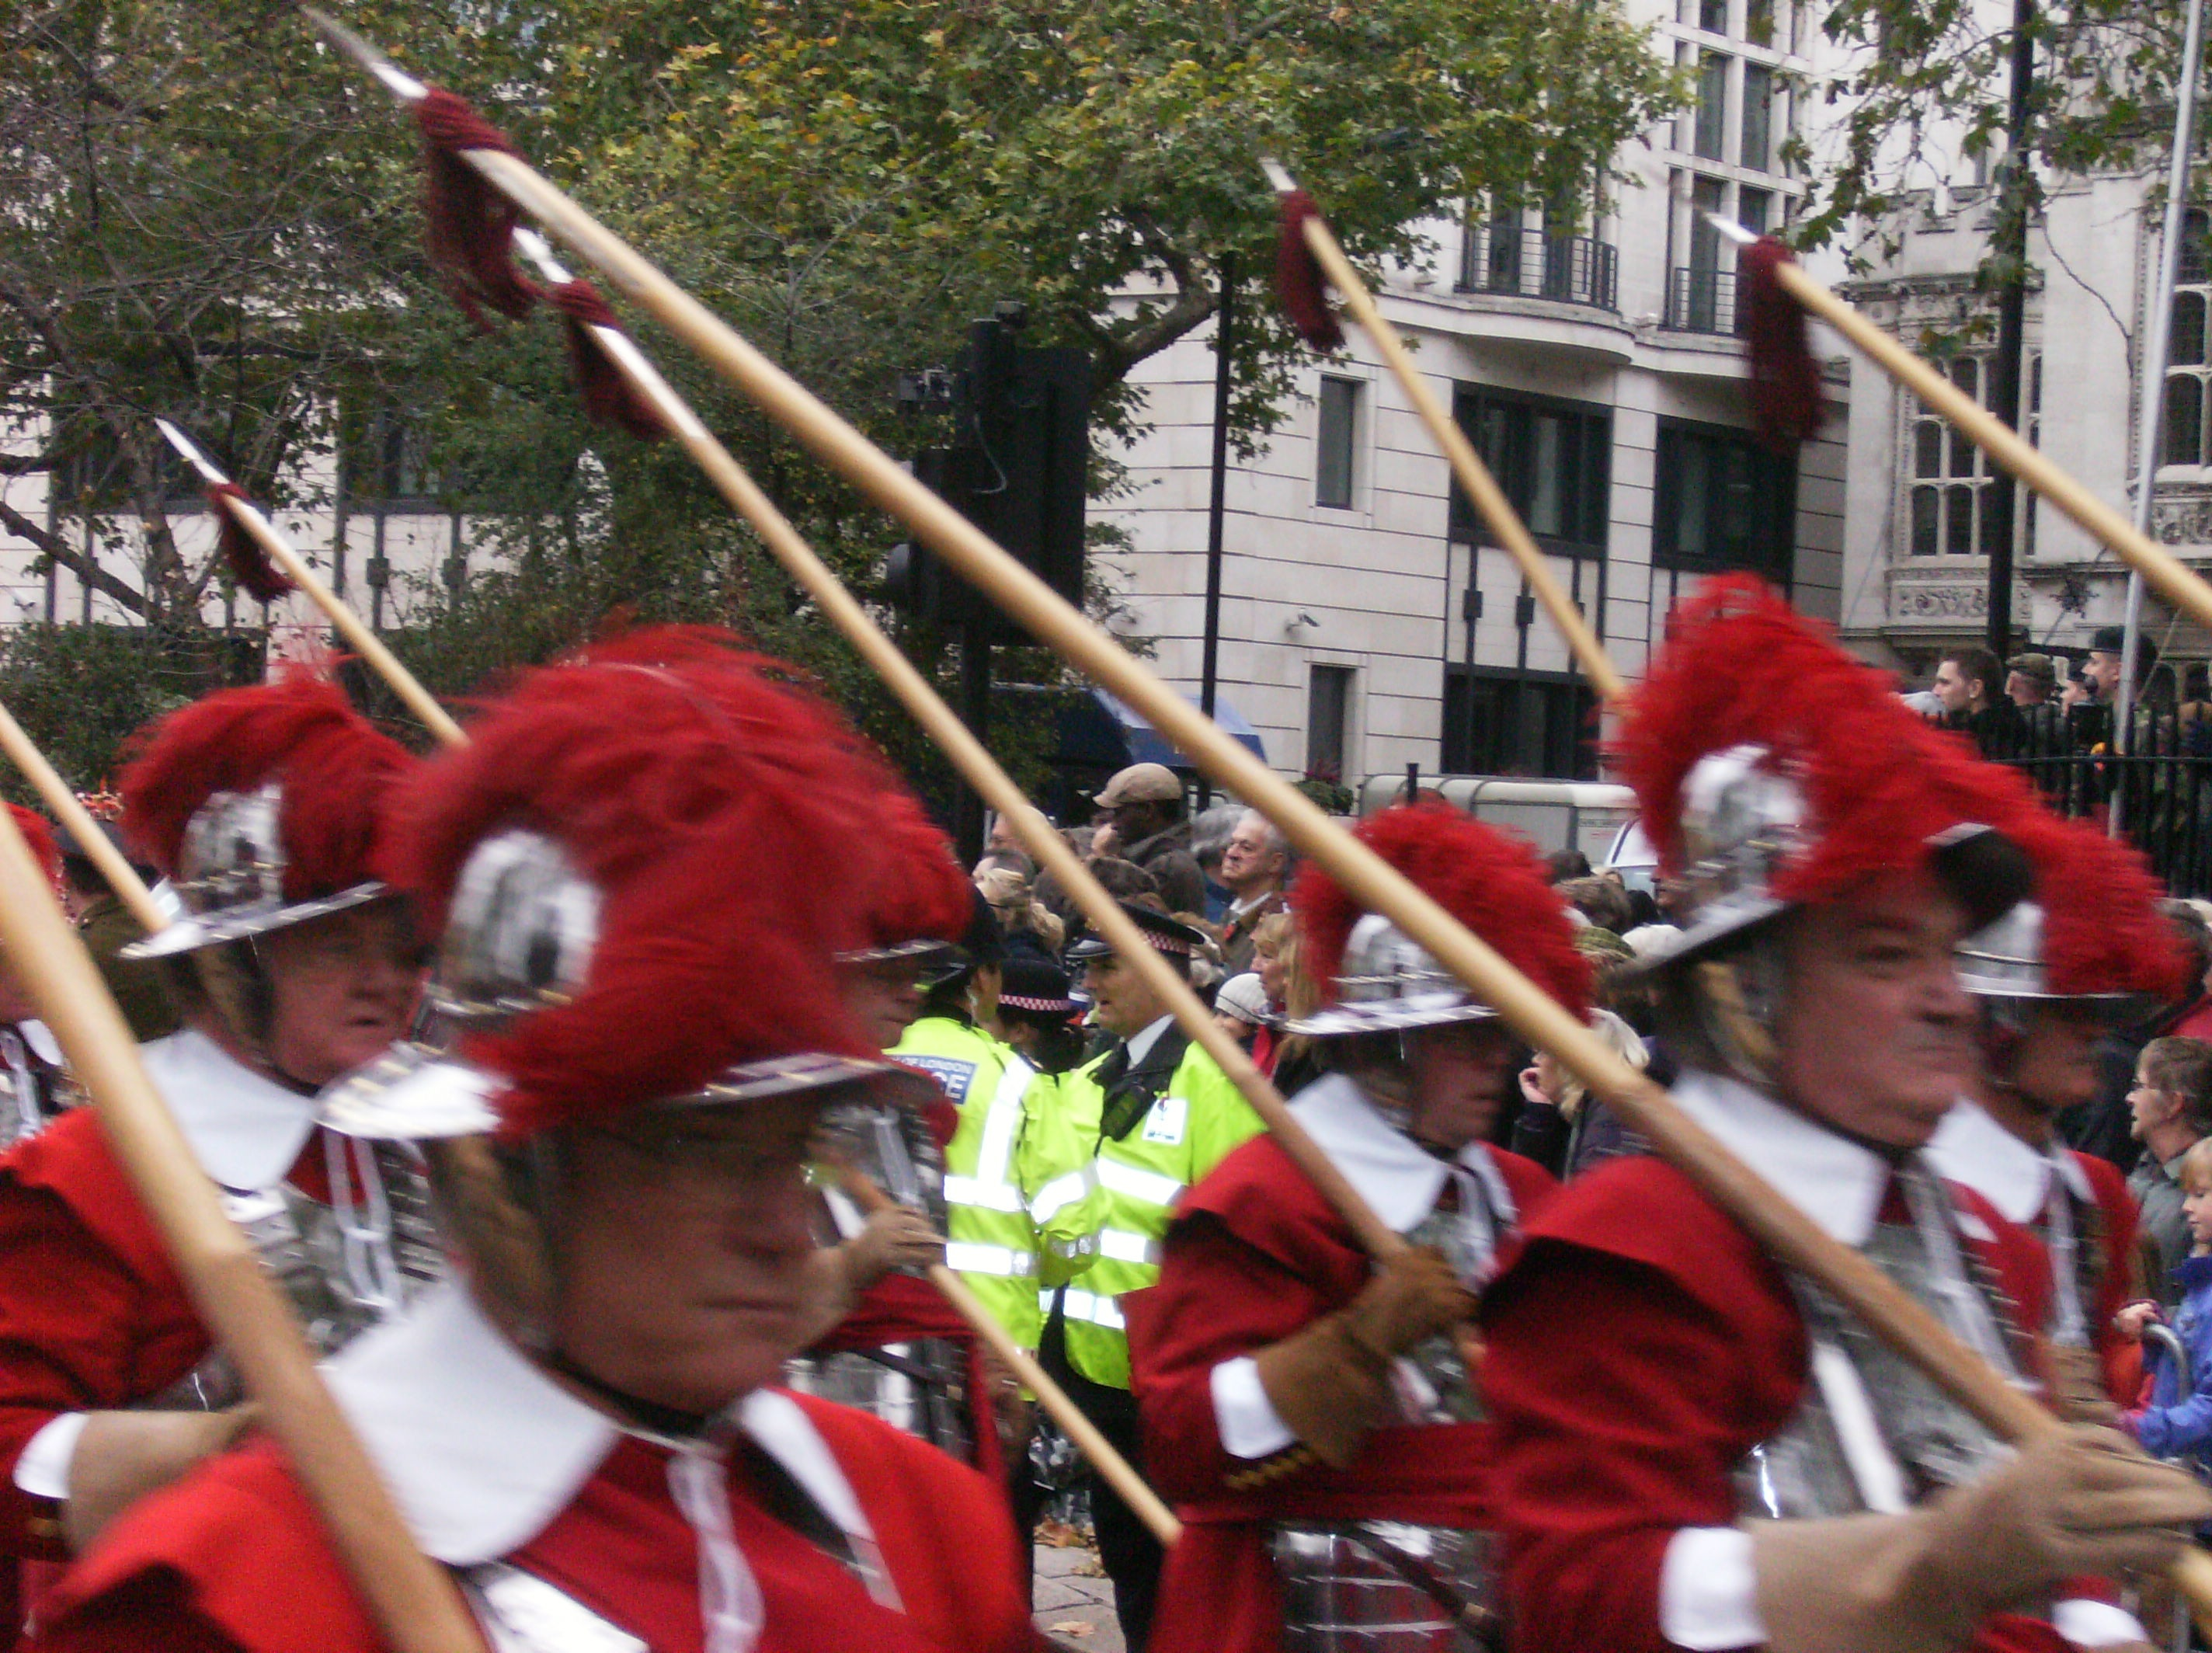 London Lord Mayors show